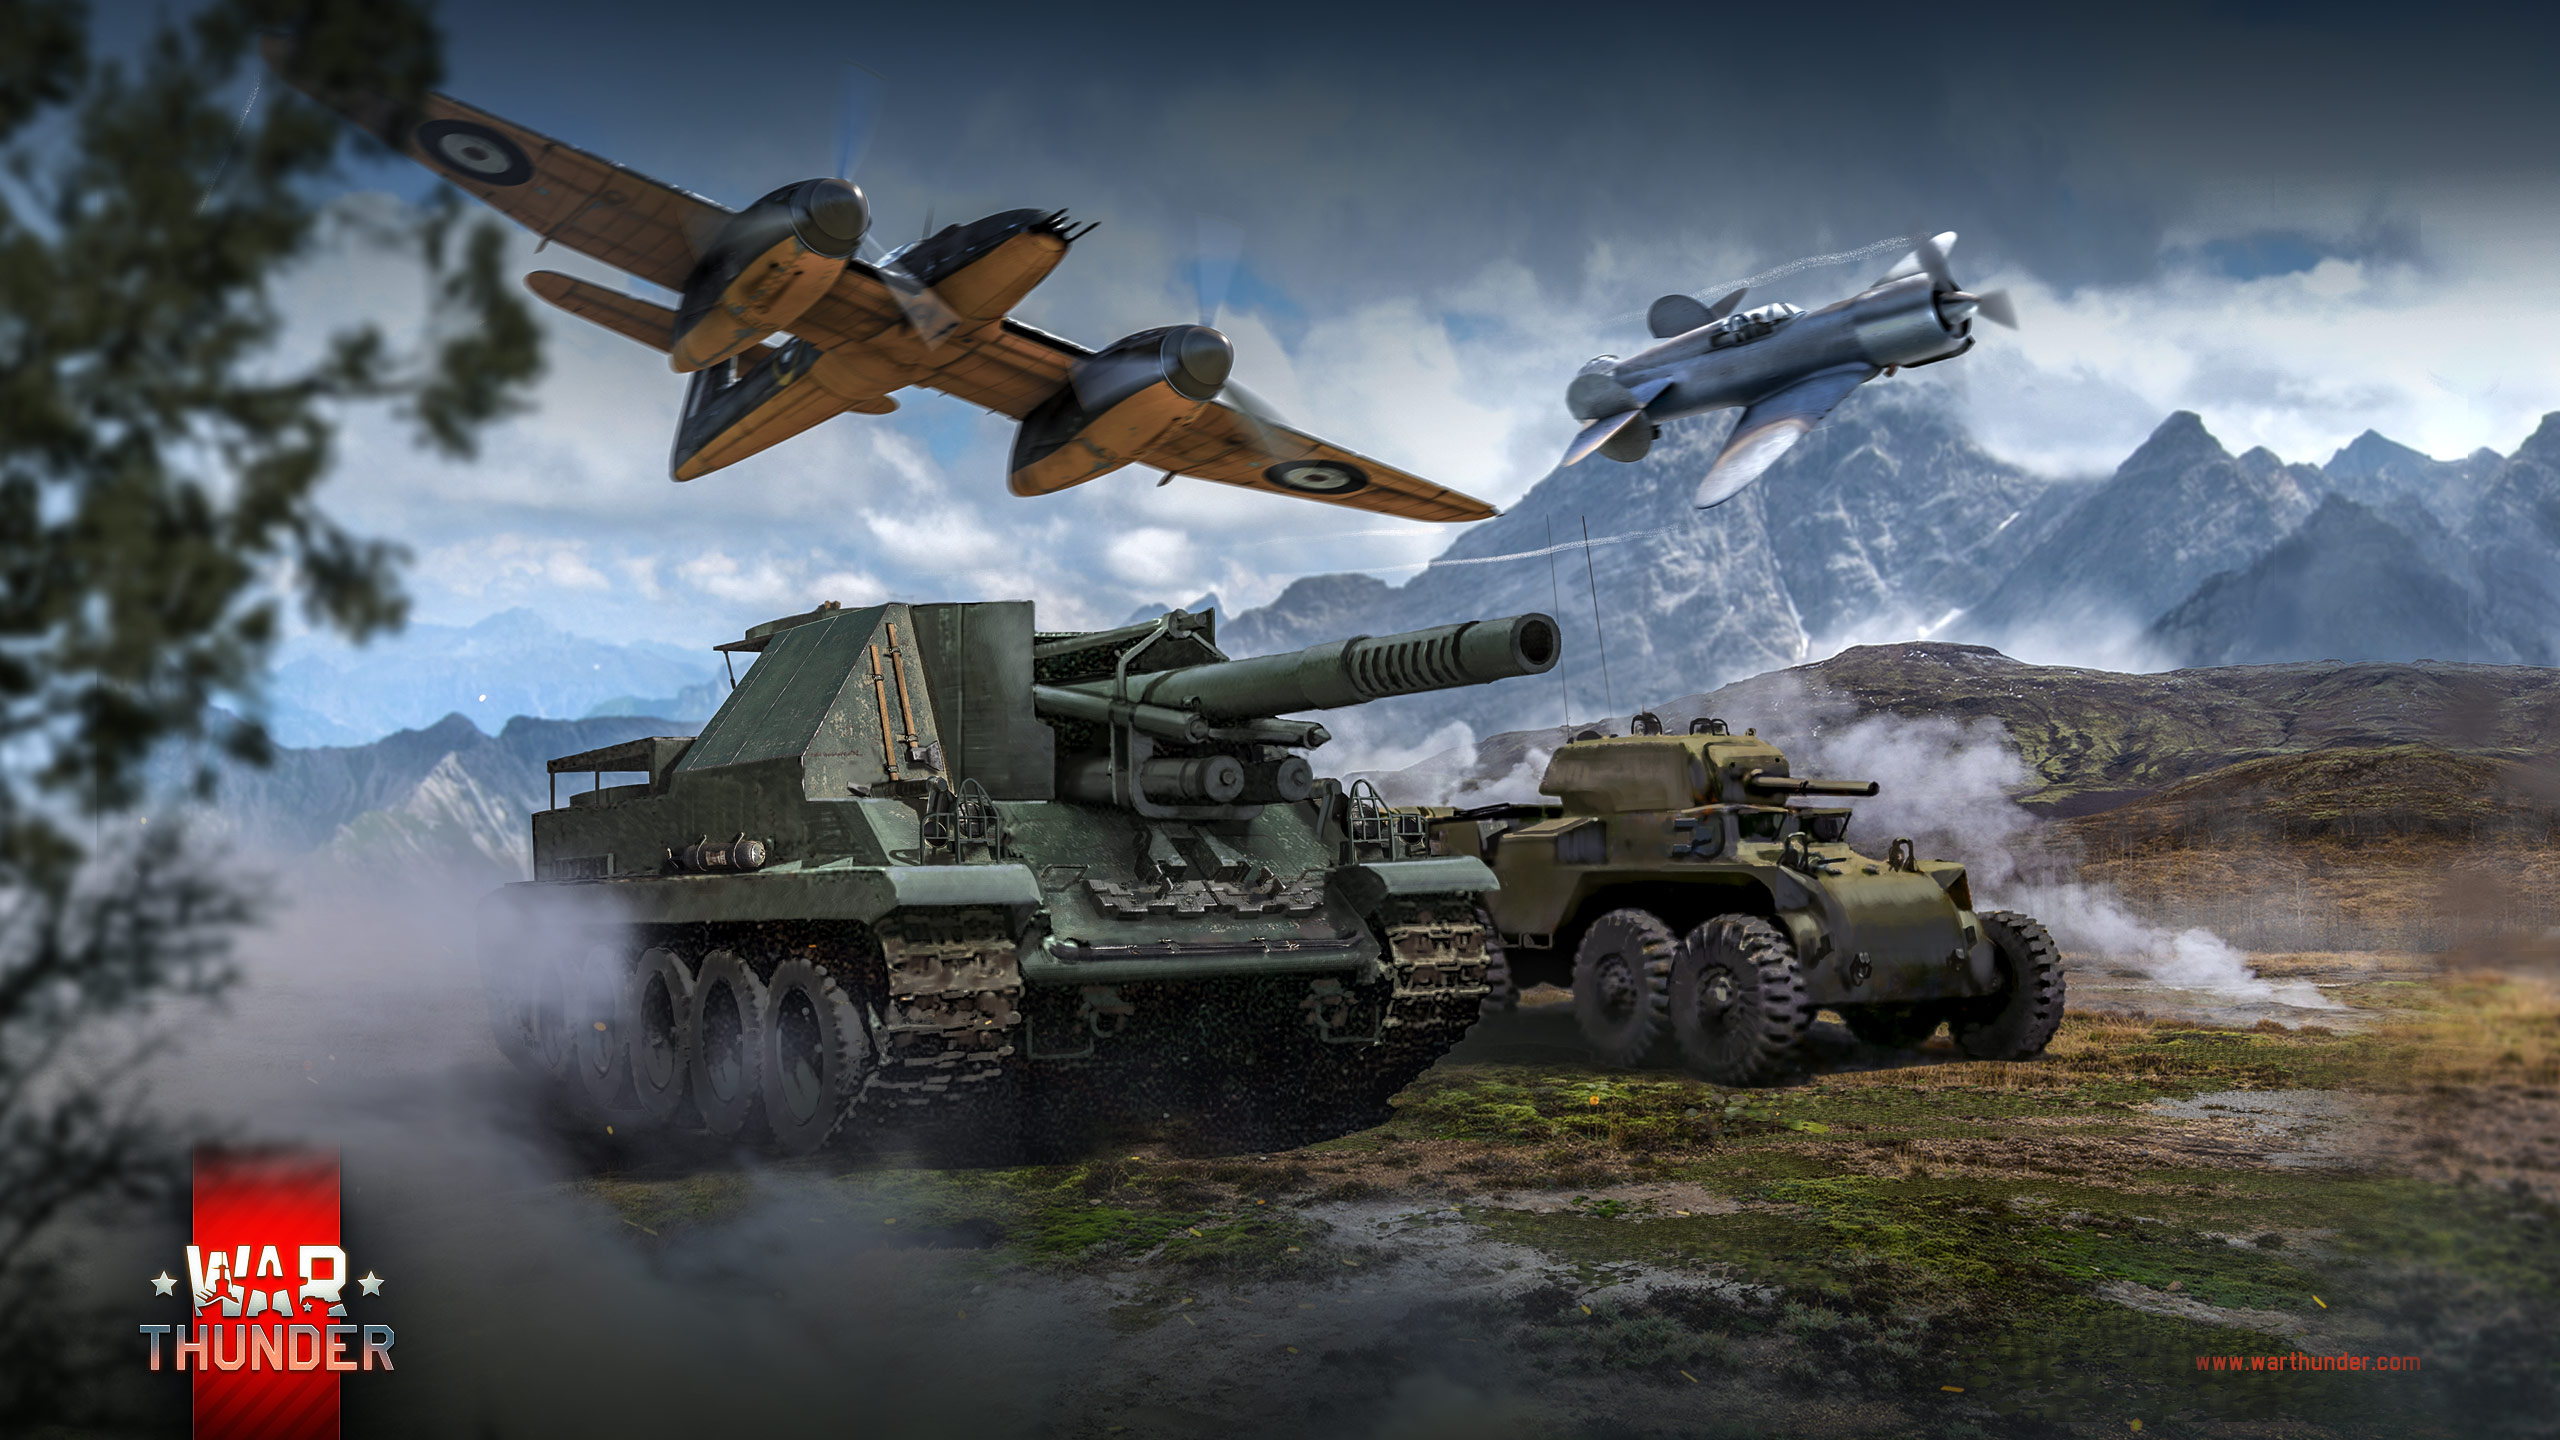 [Special] Chronicles of World War II in War Thunder - News ...